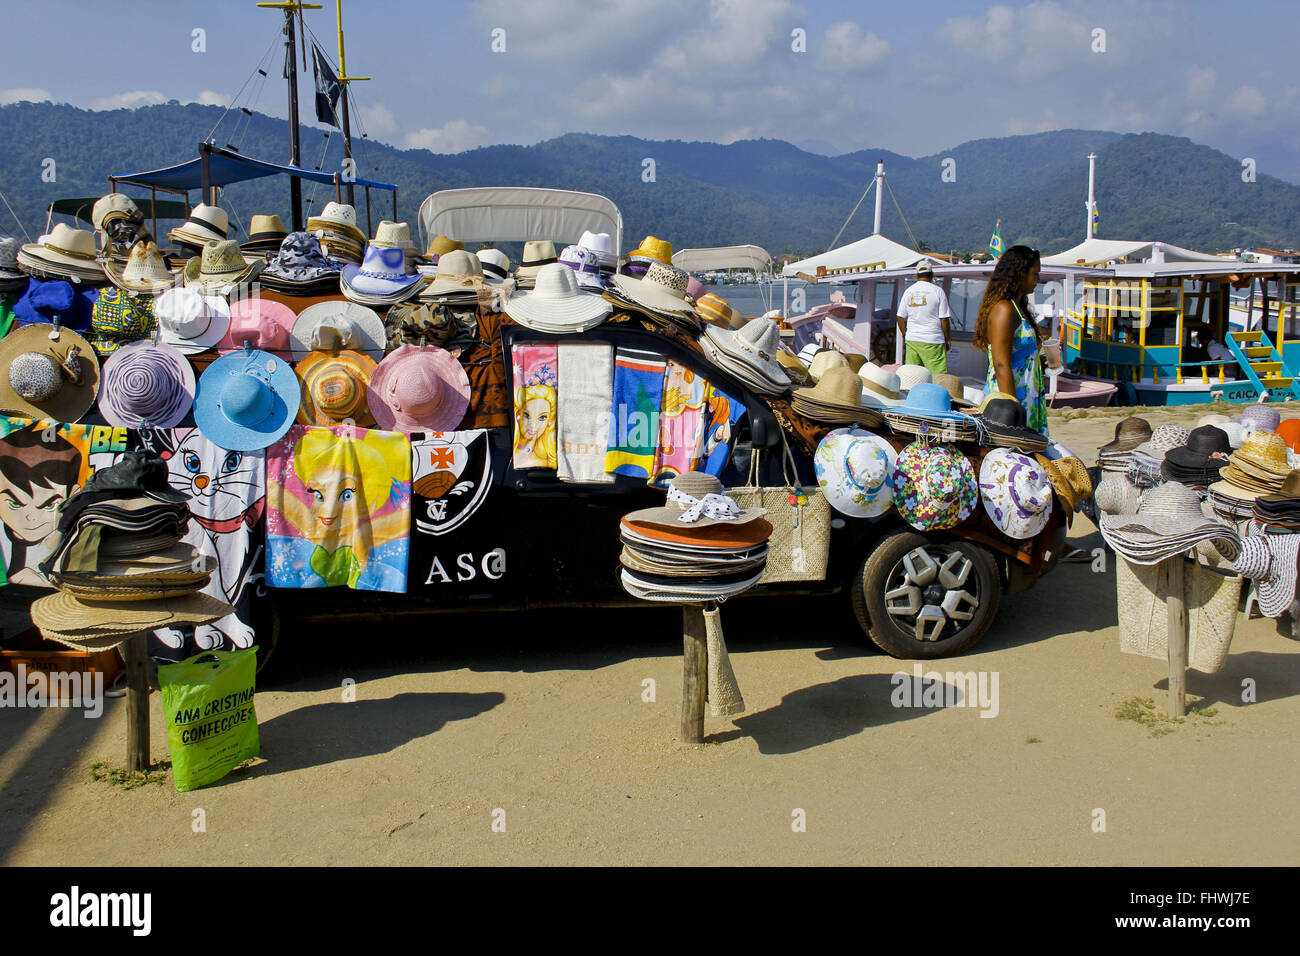 Articles covered beach near the pier car sales on the coast of Paraty - RJ - Stock Image